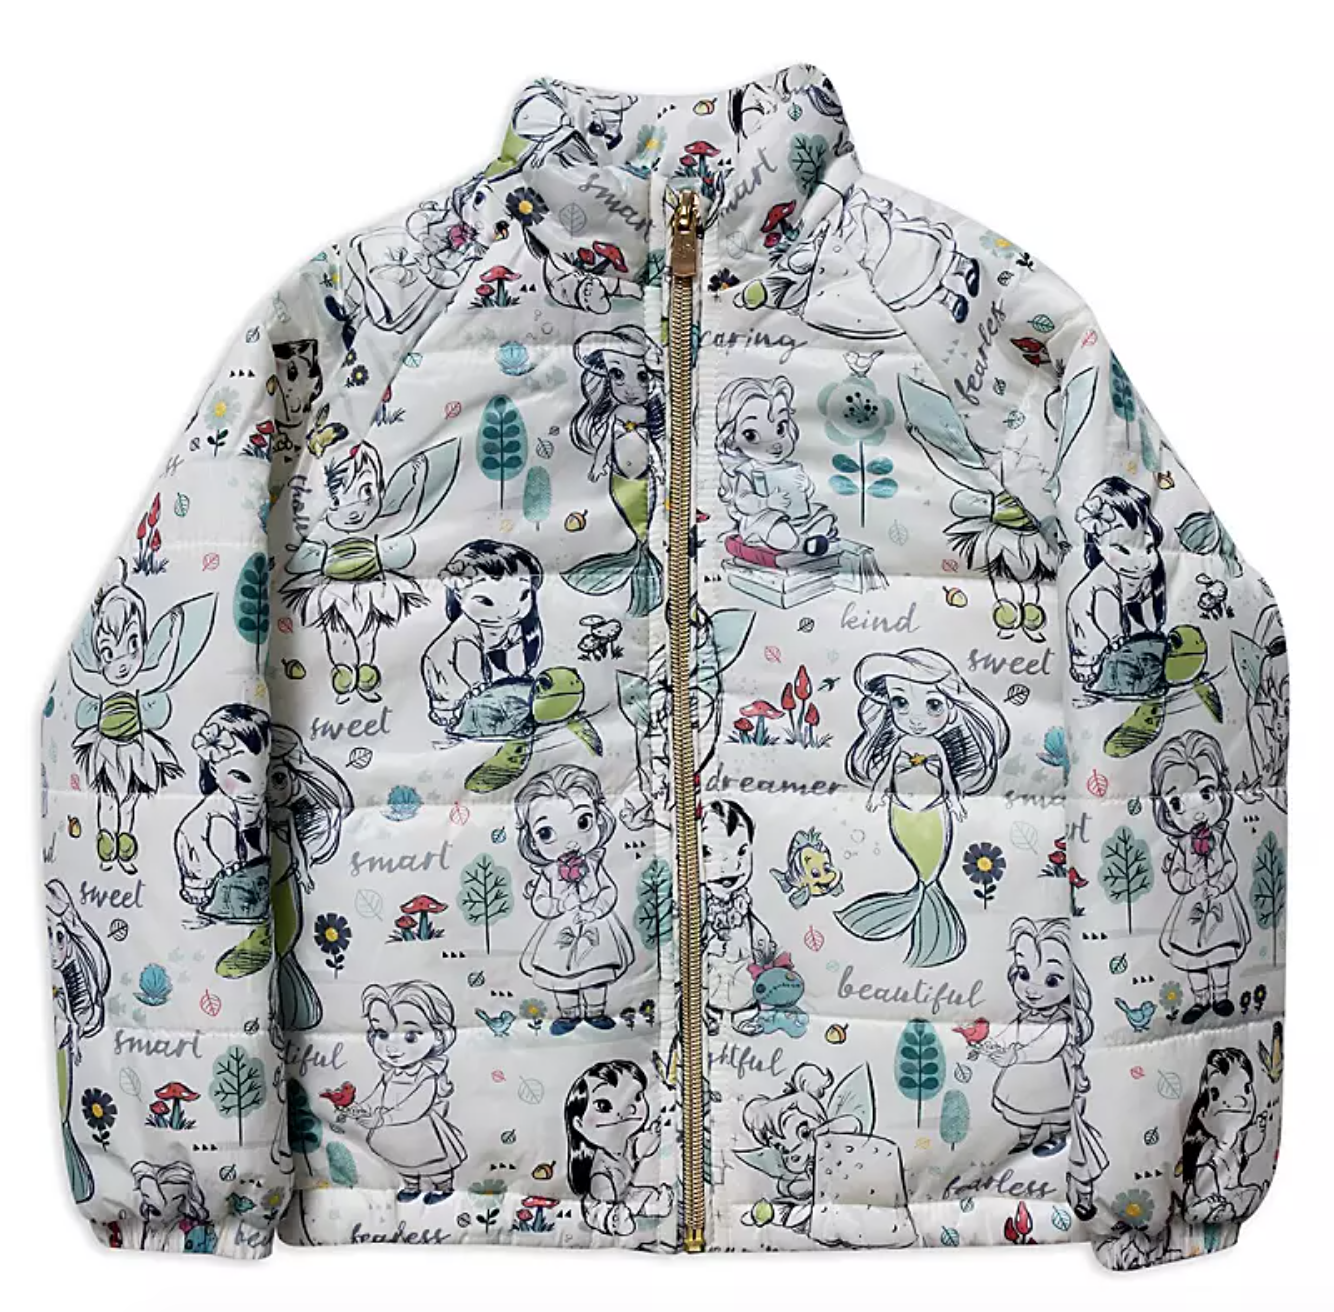 a white jacket covered in illustrations of the disney princesses as children